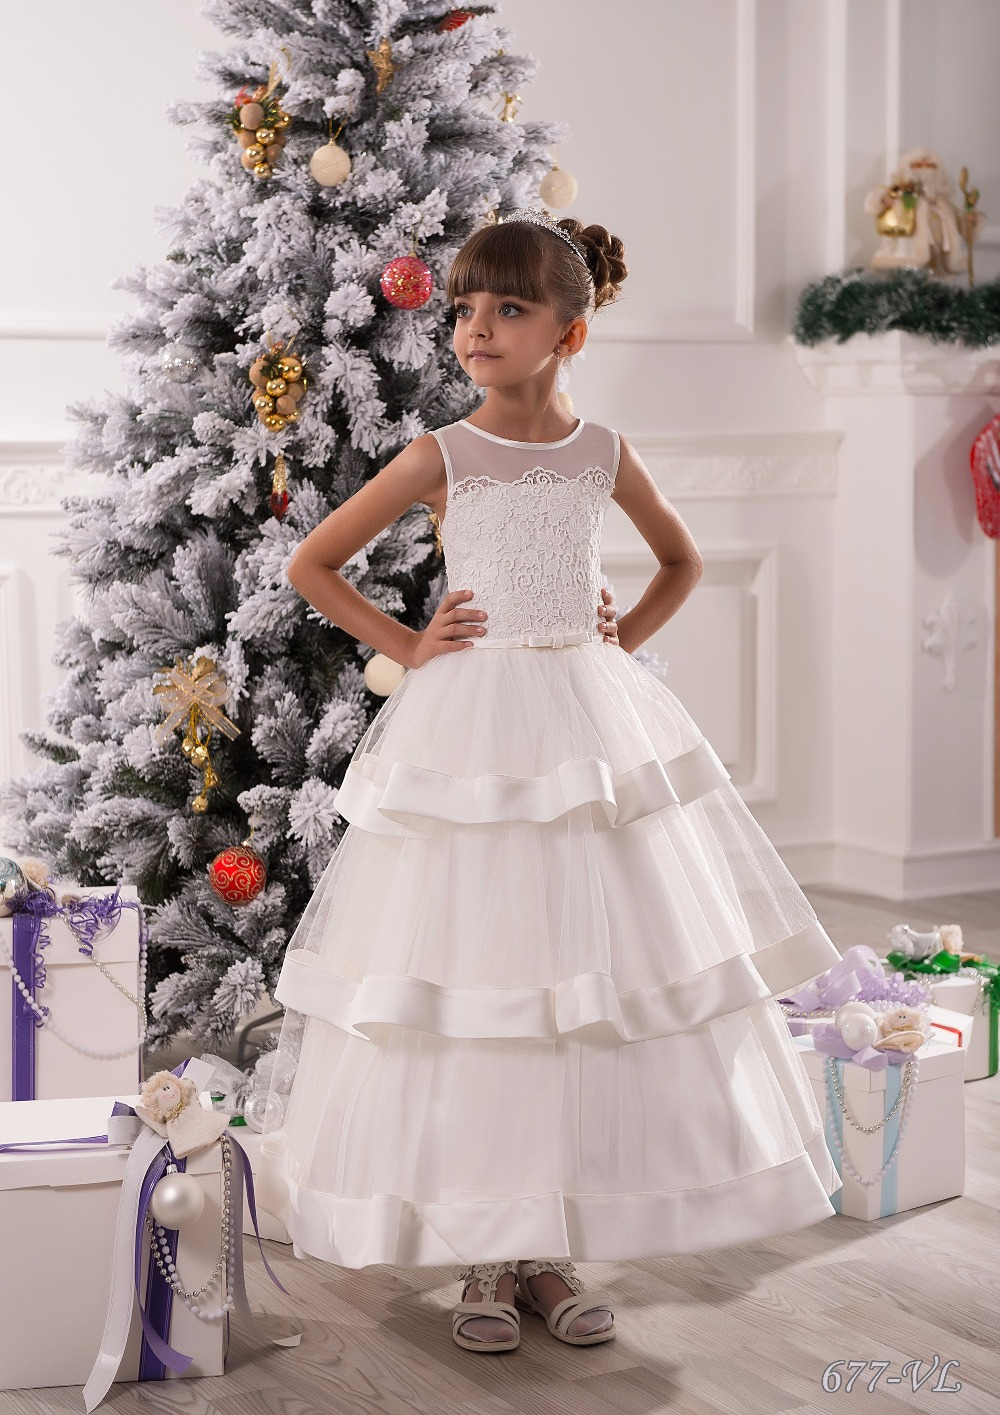 Stunning Lace Appliques Sleeveless Floor Length Ruffle Tulle Ball Gowns Holy First Communion Kids Flower Girls Dresses 0-14 Y new arrival flower girls dresses high quality lace appliques beading short sleeve ball gowns custom holy first communion gowns